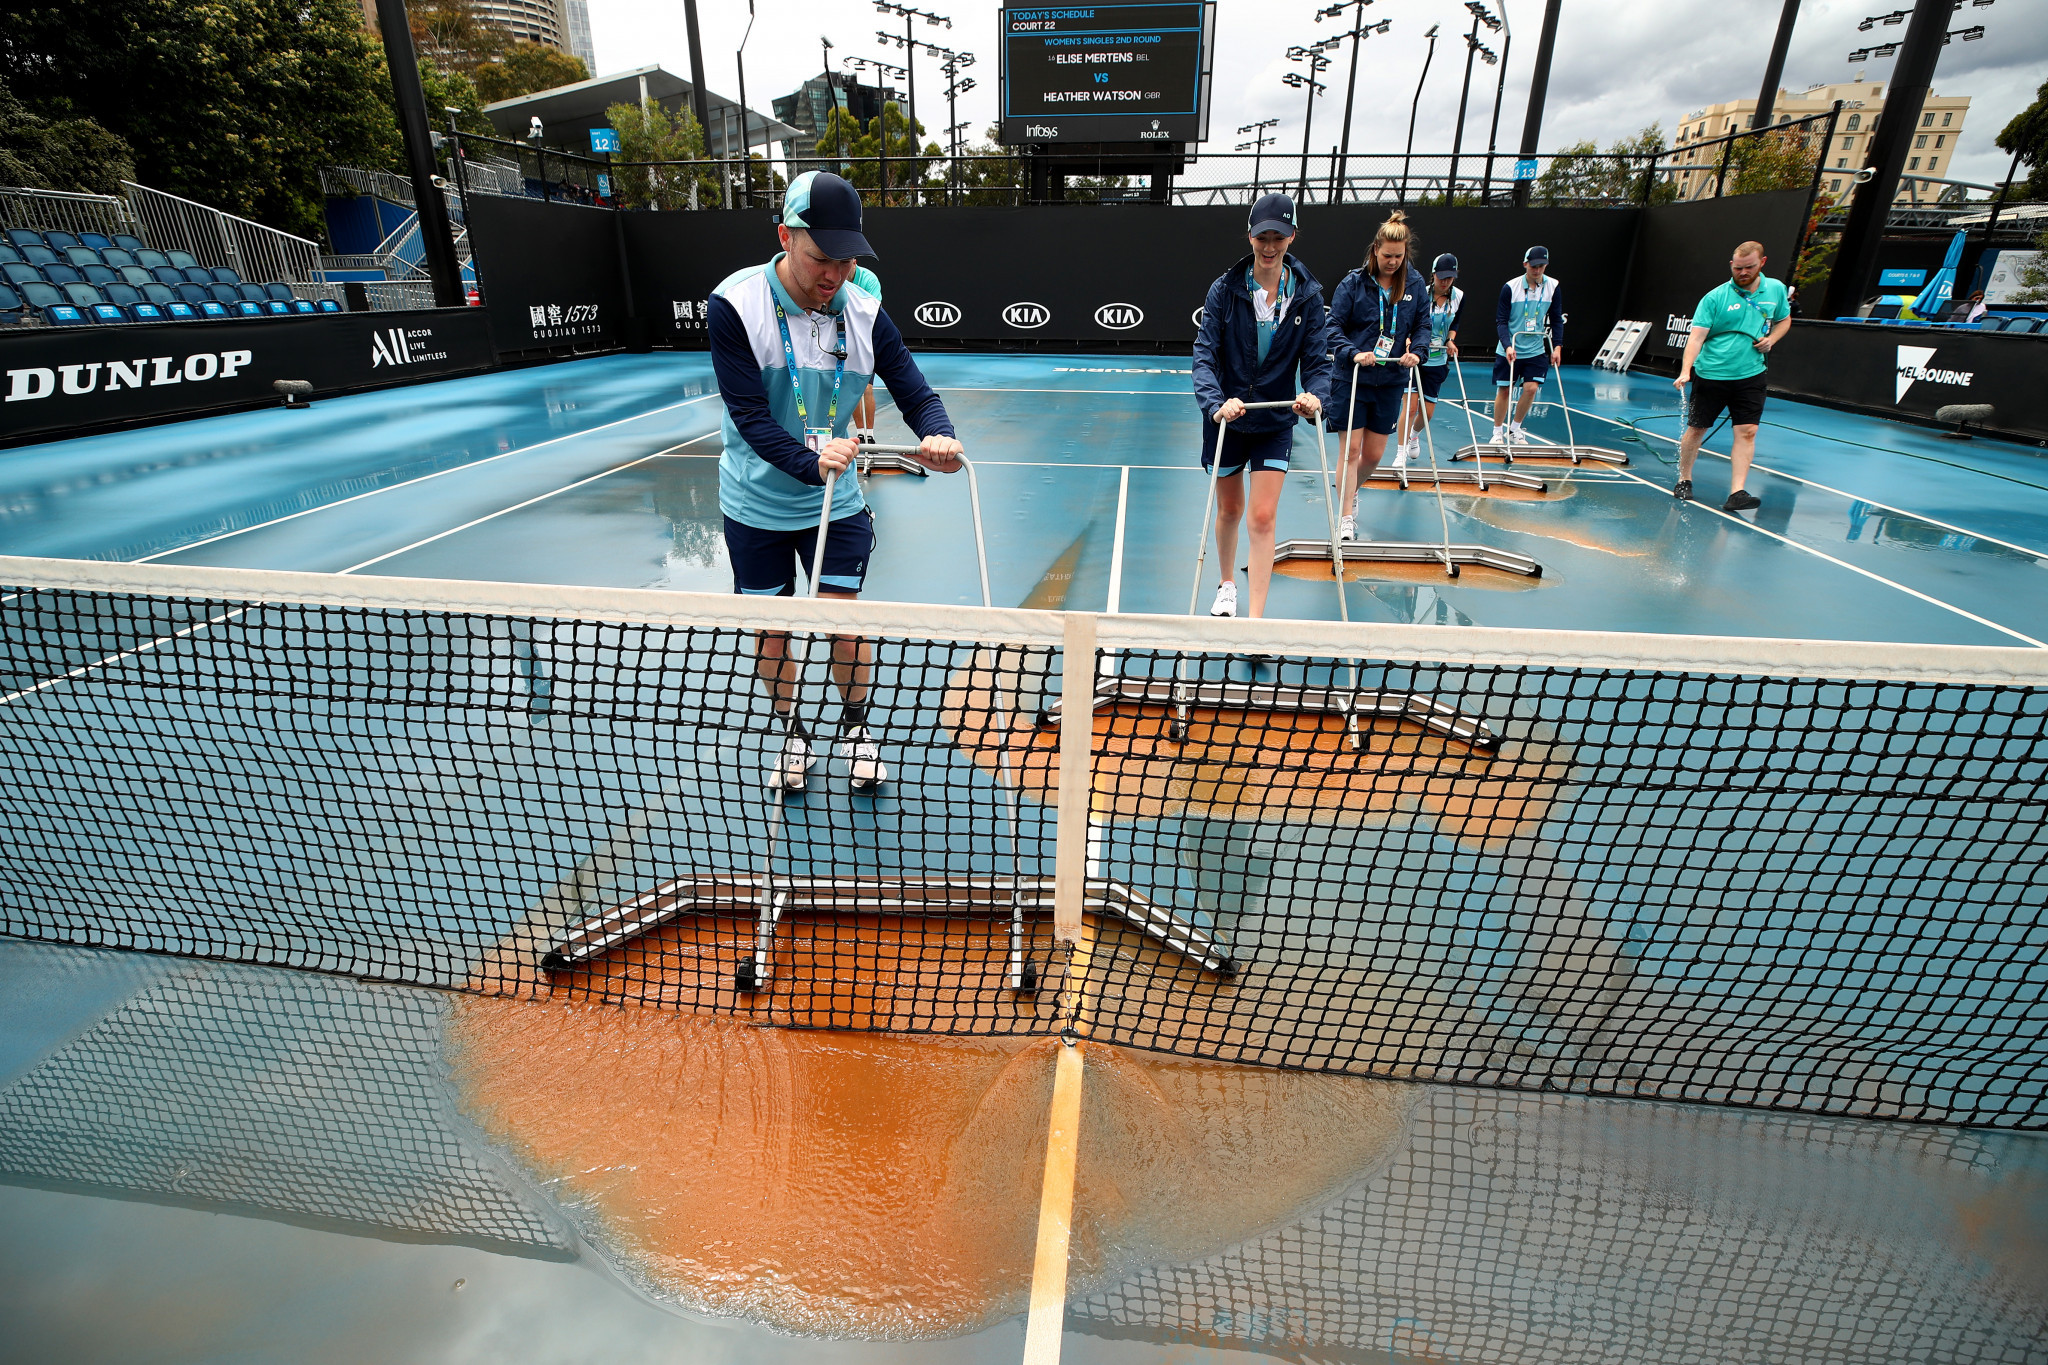 Heavy rainfall deposited dust on day four of the Australian Open, delaying play on the outside courts ©Getty Images